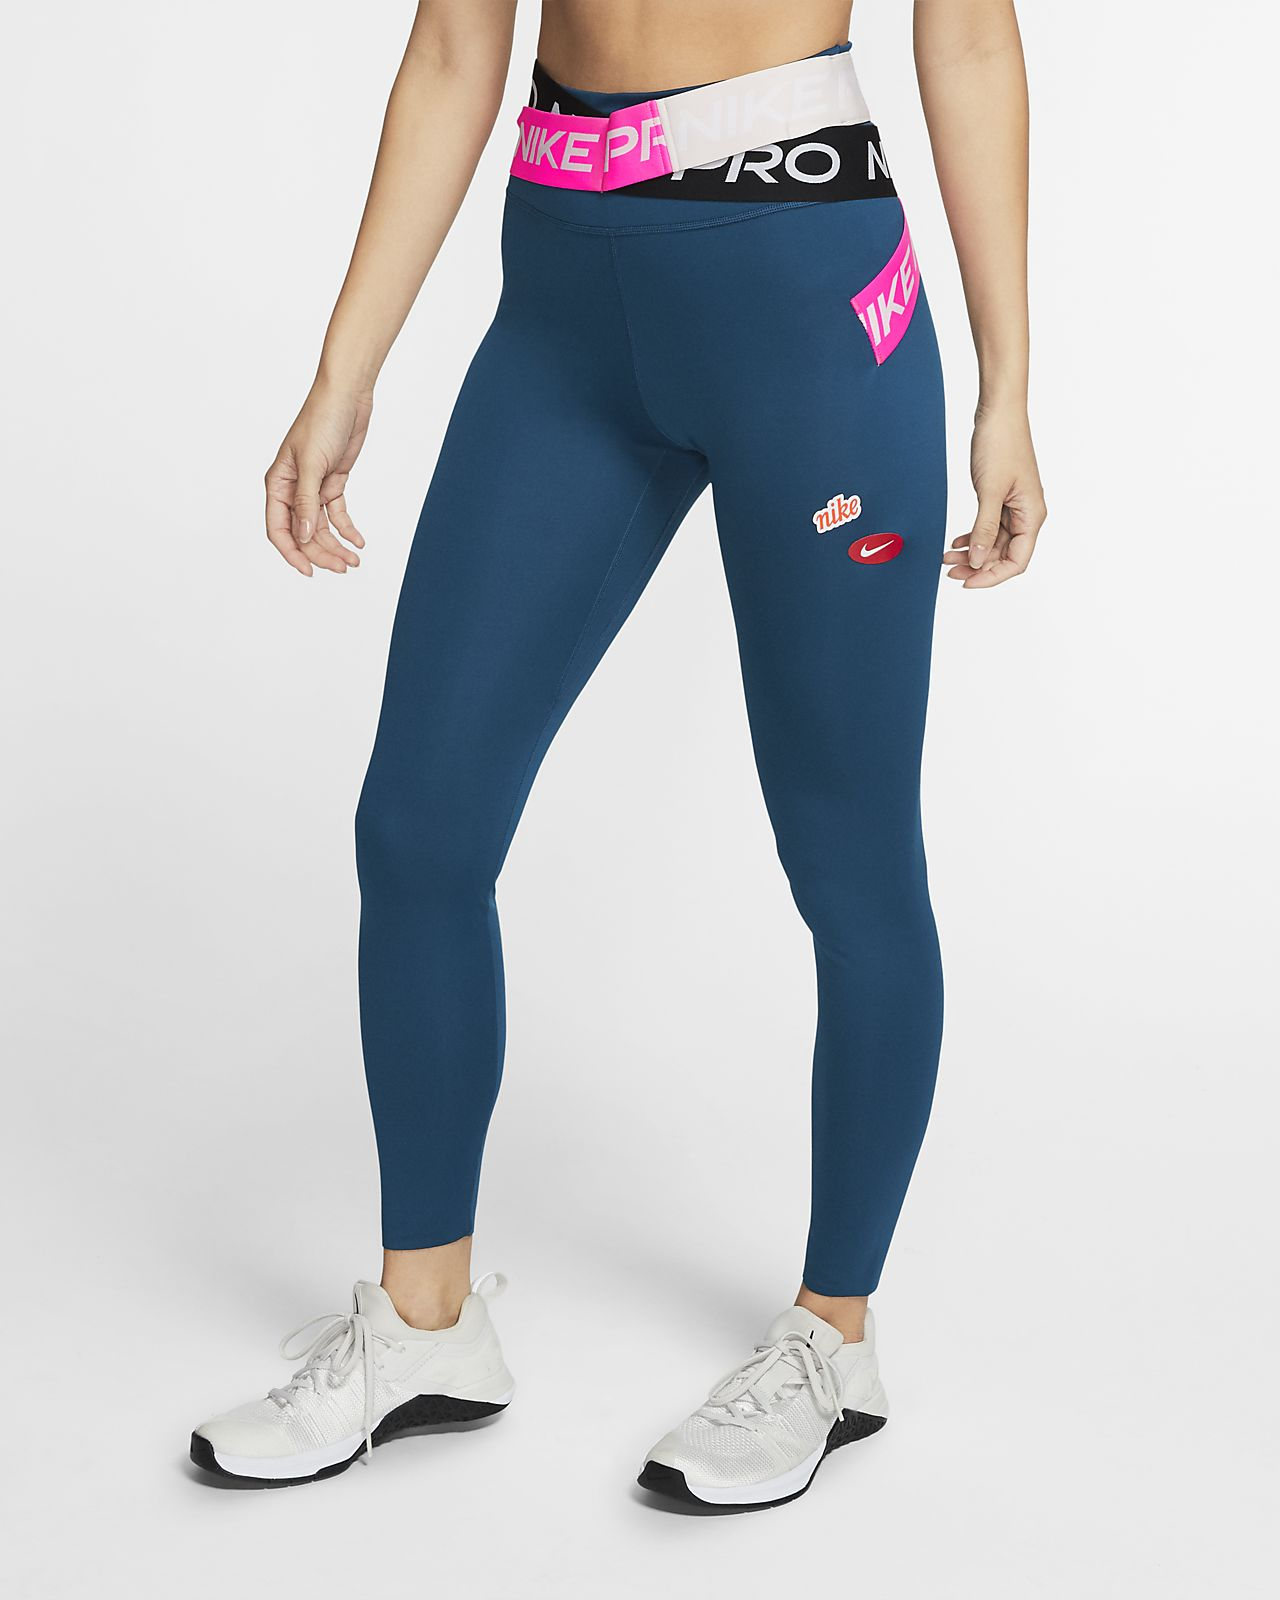 Nike One Luxe Icon Clash Women's Leggings